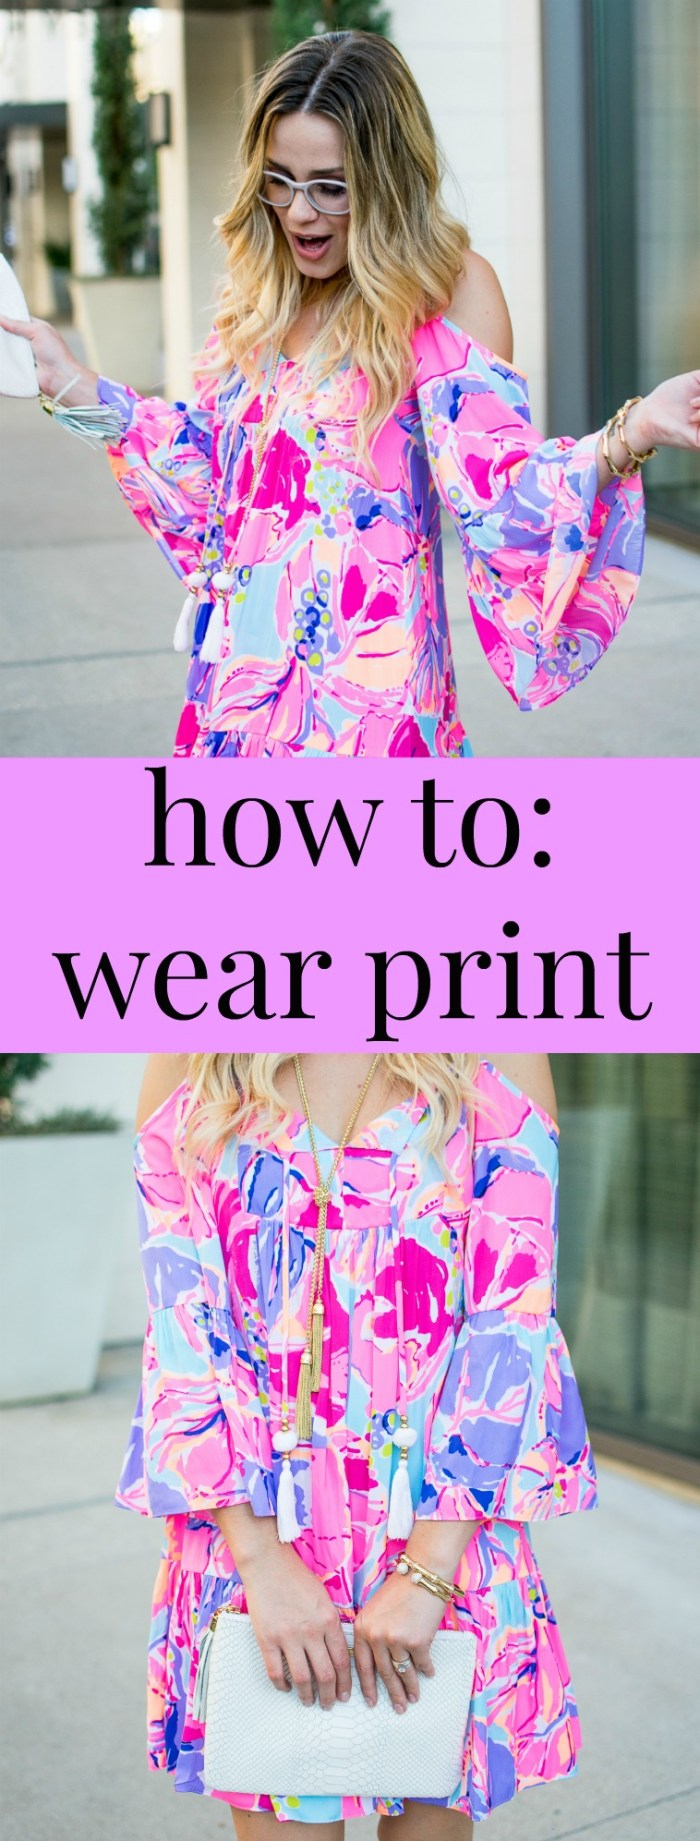 Lilly Pulitzer Dress | How to wear Print | Uptown with Elly Brown